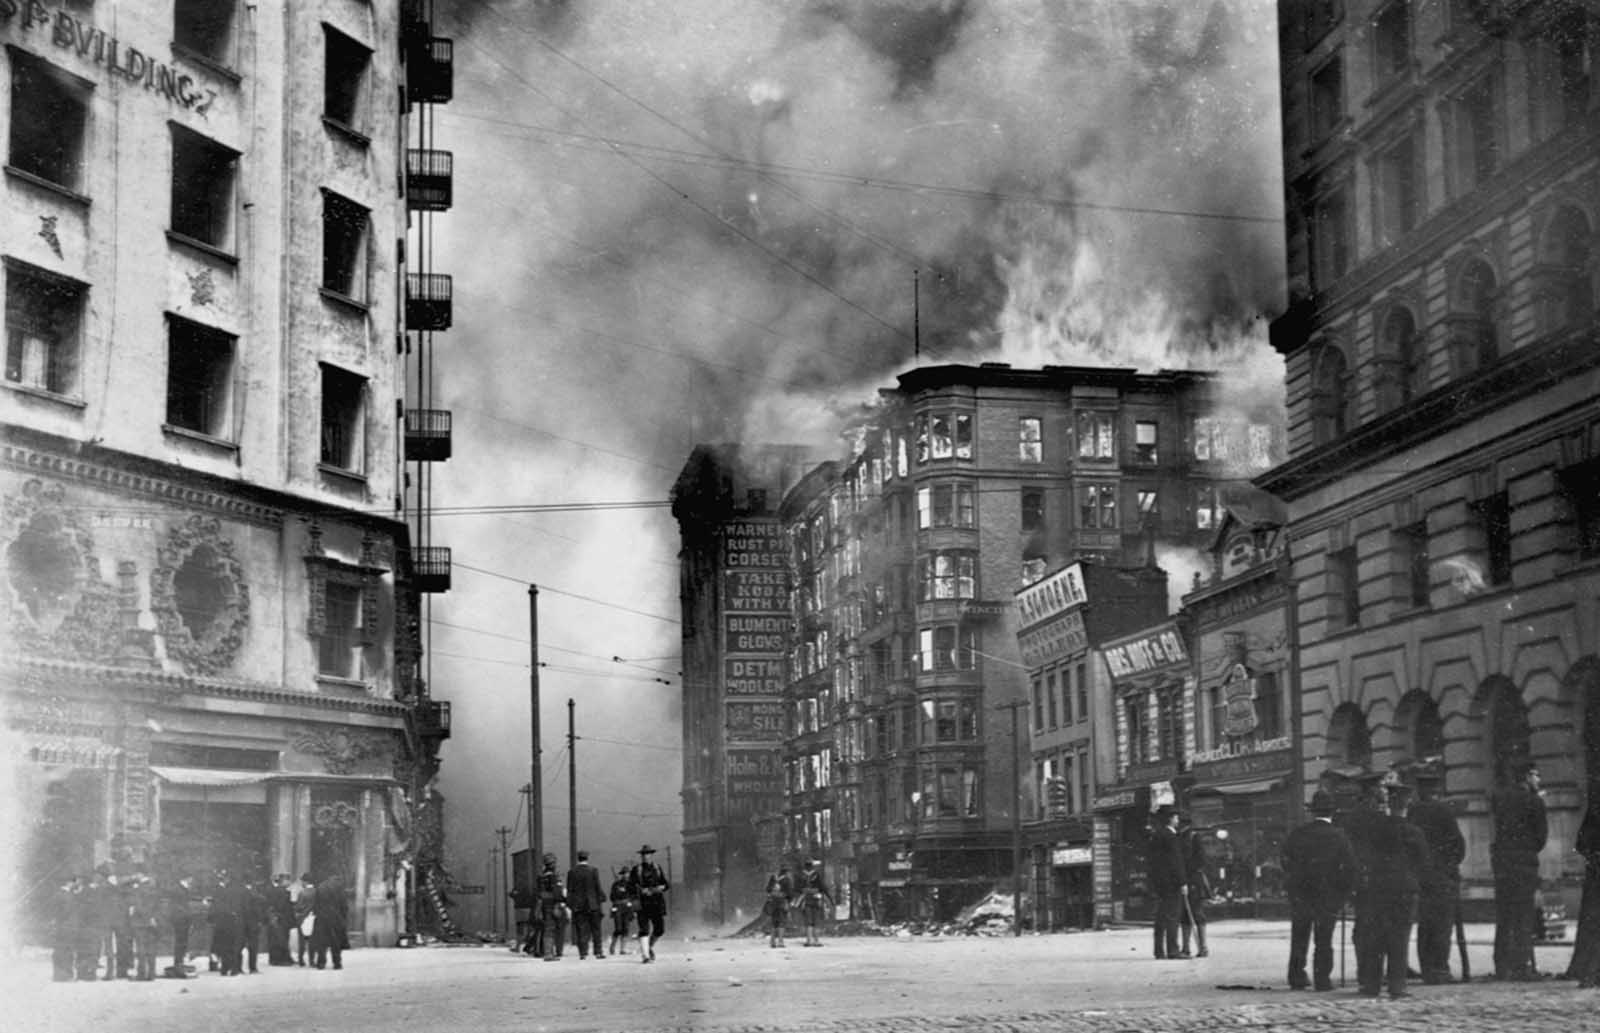 People watch as the Winchester Hotel burns in the aftermath of the 1906 San Francisco earthquake. The Hearst Building (left) was dynamited to use as a fire break between the fire and the rest of the city.